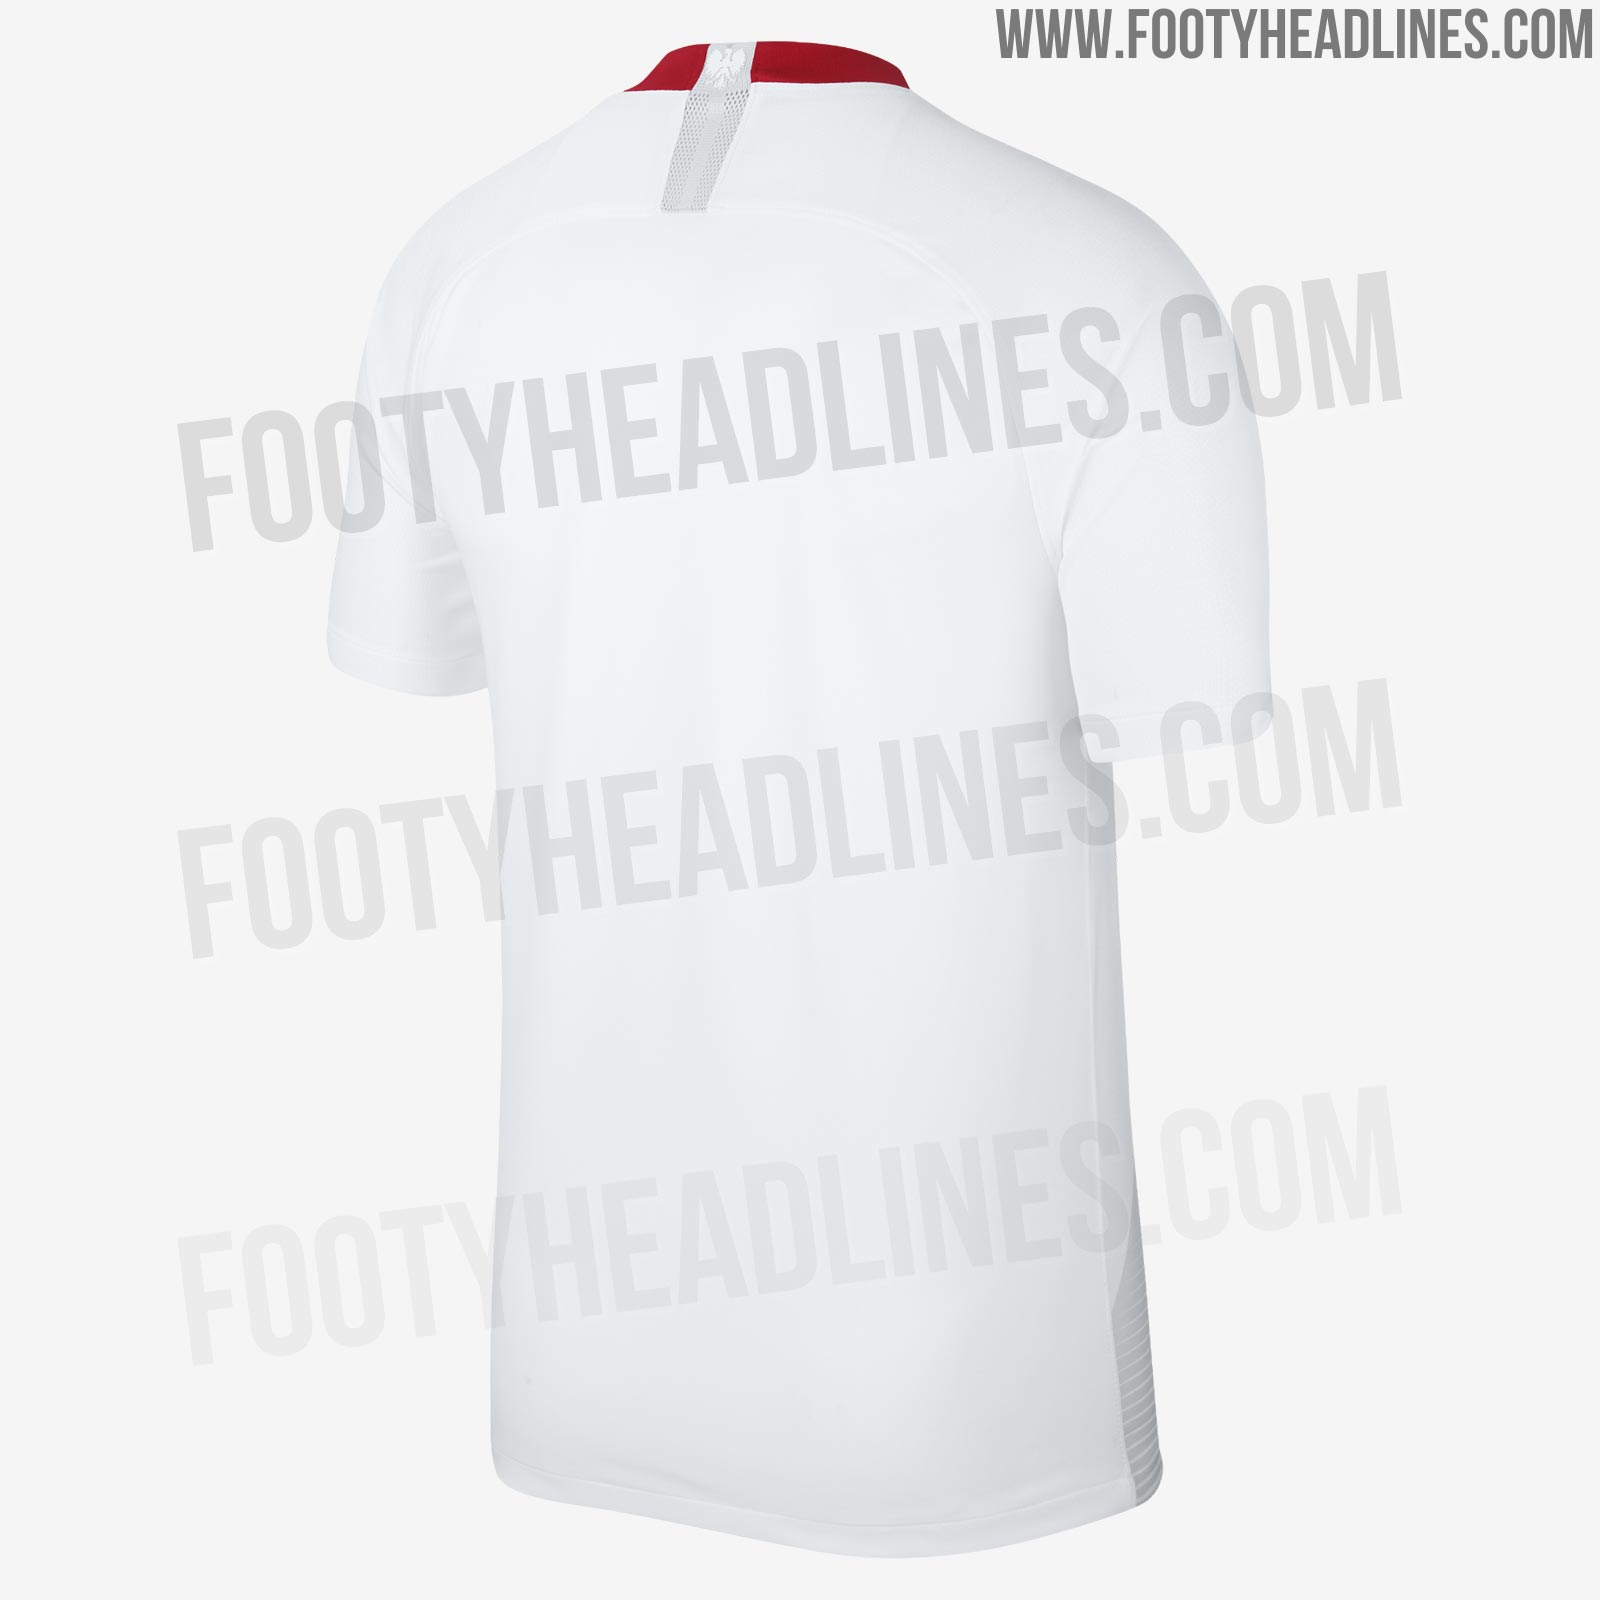 325bccc7c8d The Poland 2018 World Cup away jersey is red, based on the same template  and featuring the same graphic found on the home shirt. A clean look  overall, ...